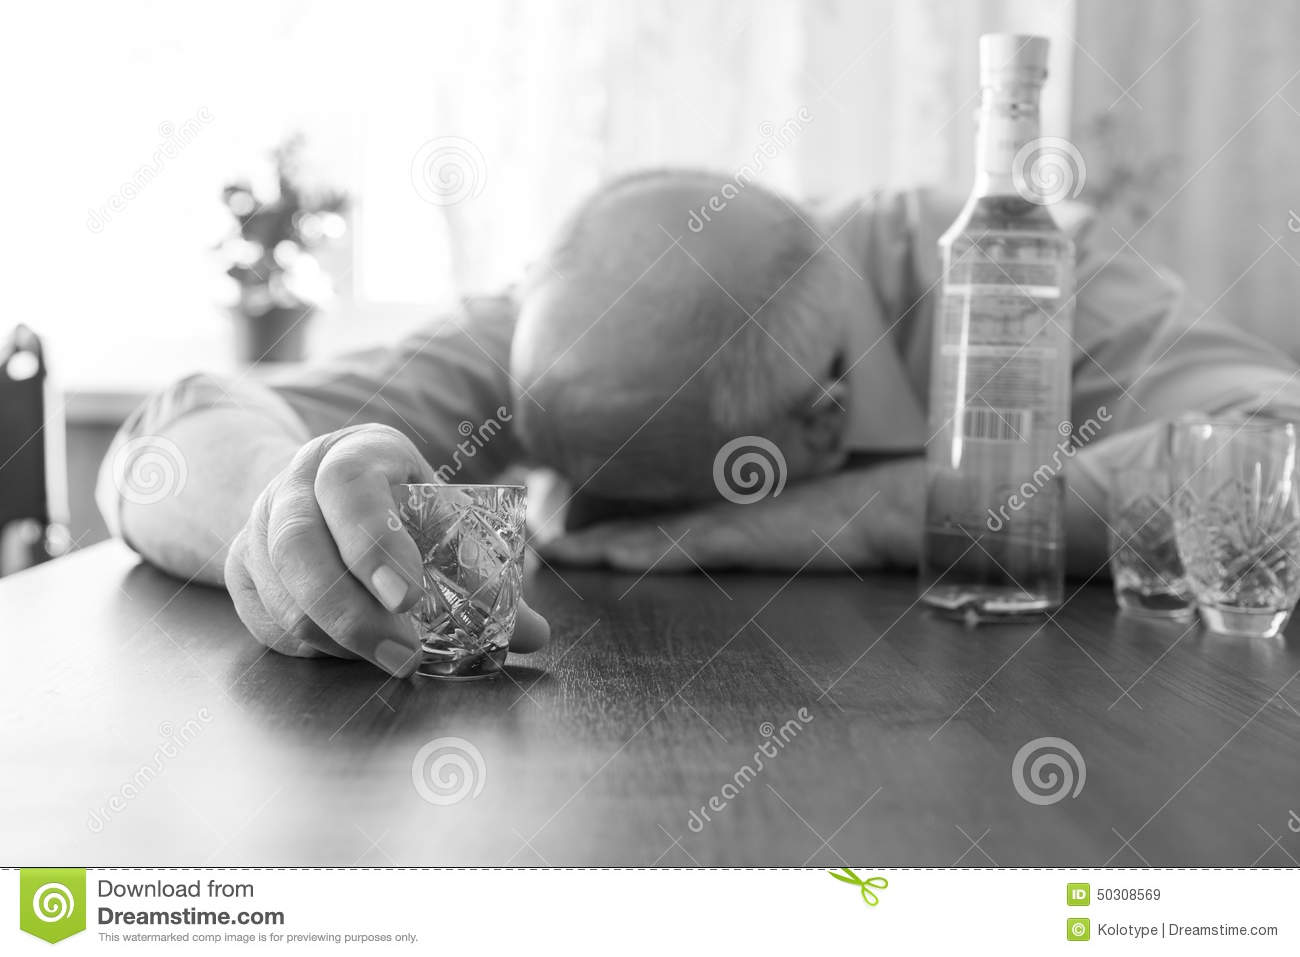 Drunk Old Man Sleeping On The Table Stock Photo Image  : drunk old man sleeping table close up wine holding small glass captured monochrome 50308569 from www.dreamstime.com size 1300 x 957 jpeg 86kB